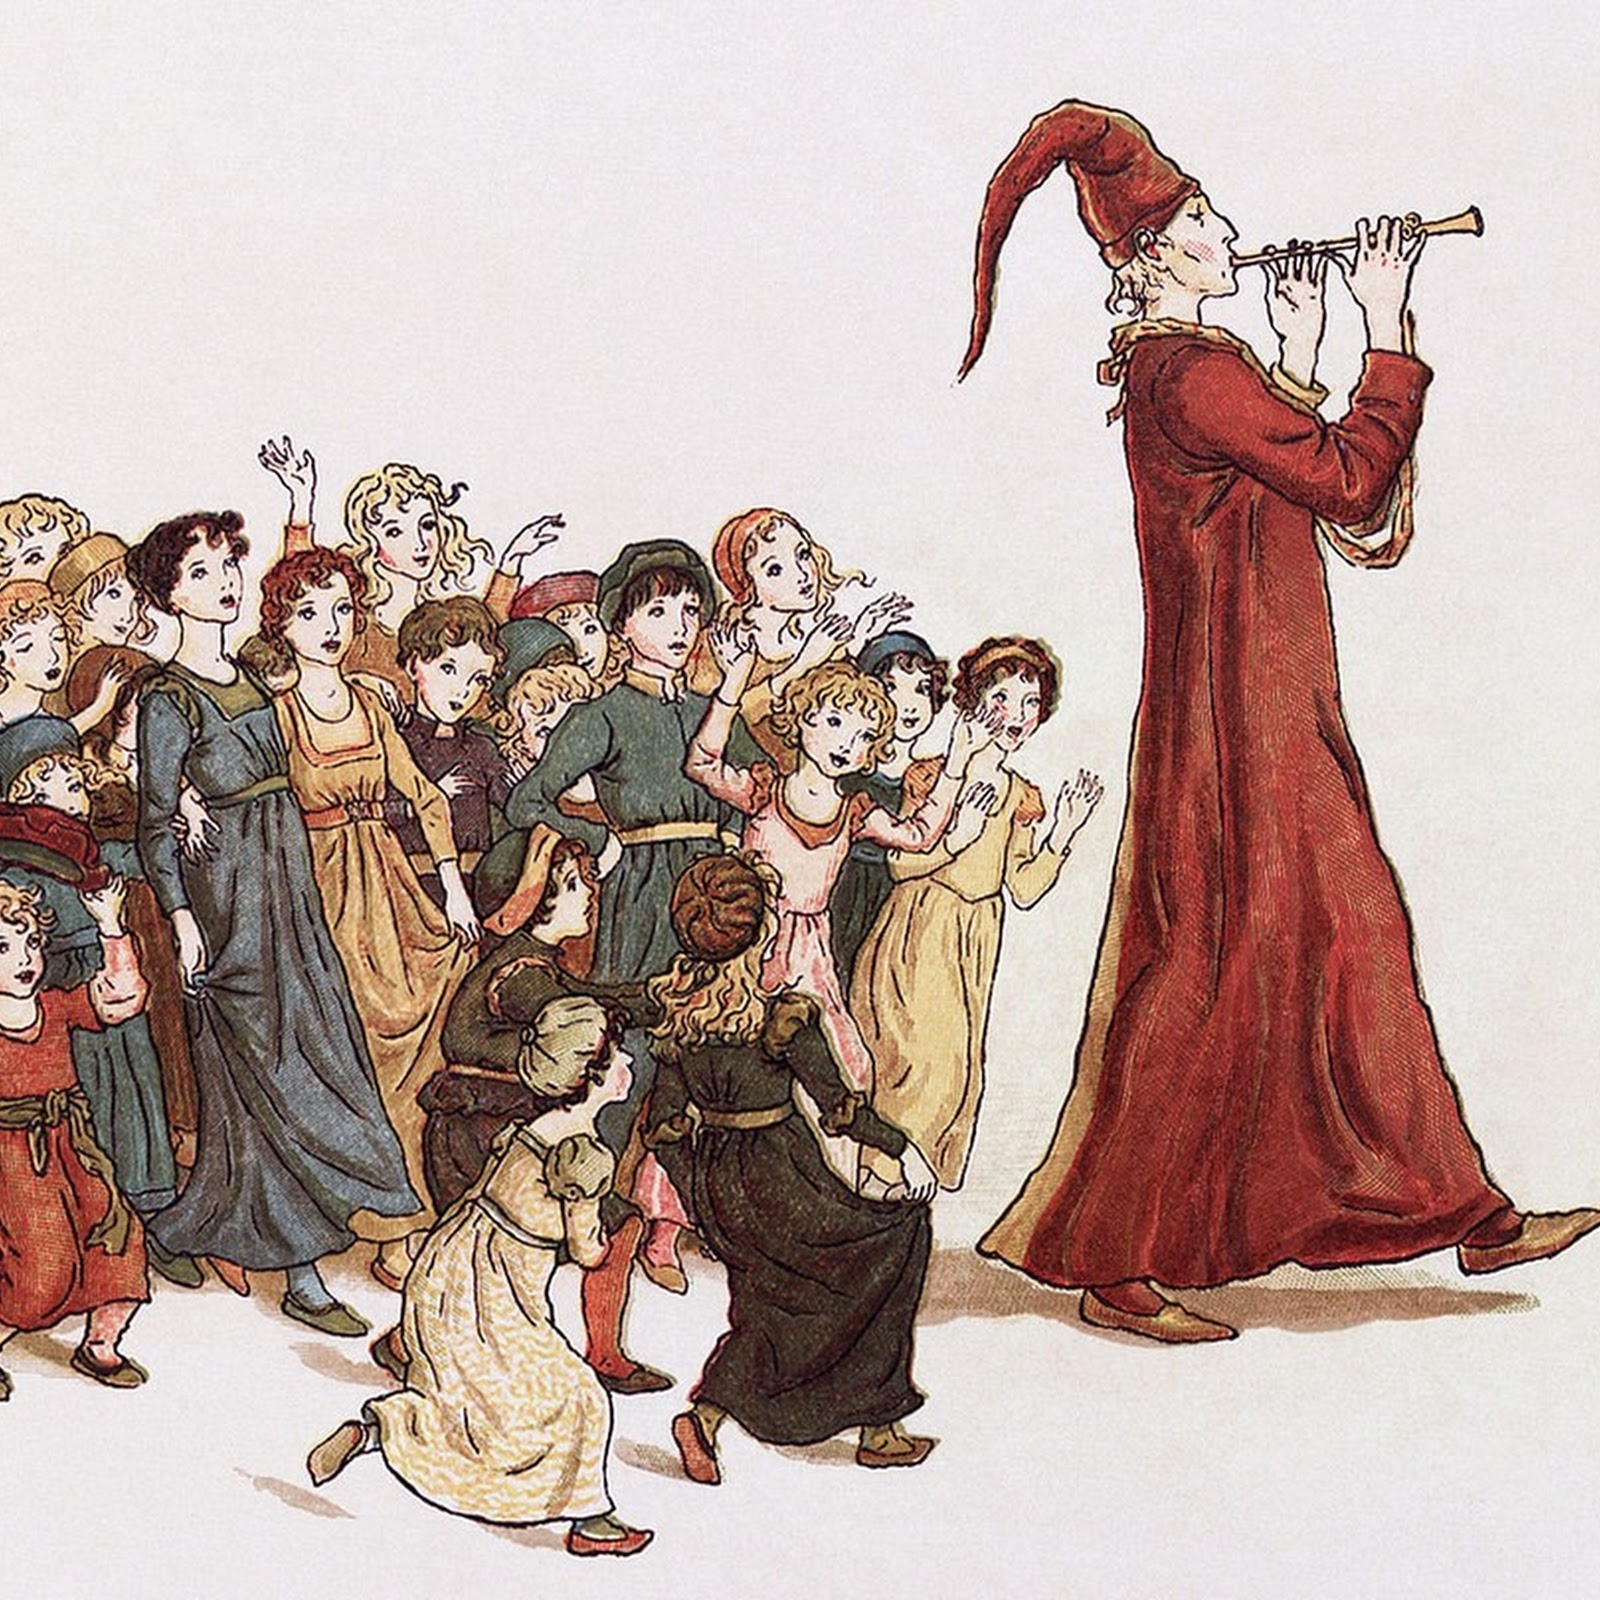 The True Story Behind 'The Pied Piper of Hamelin'